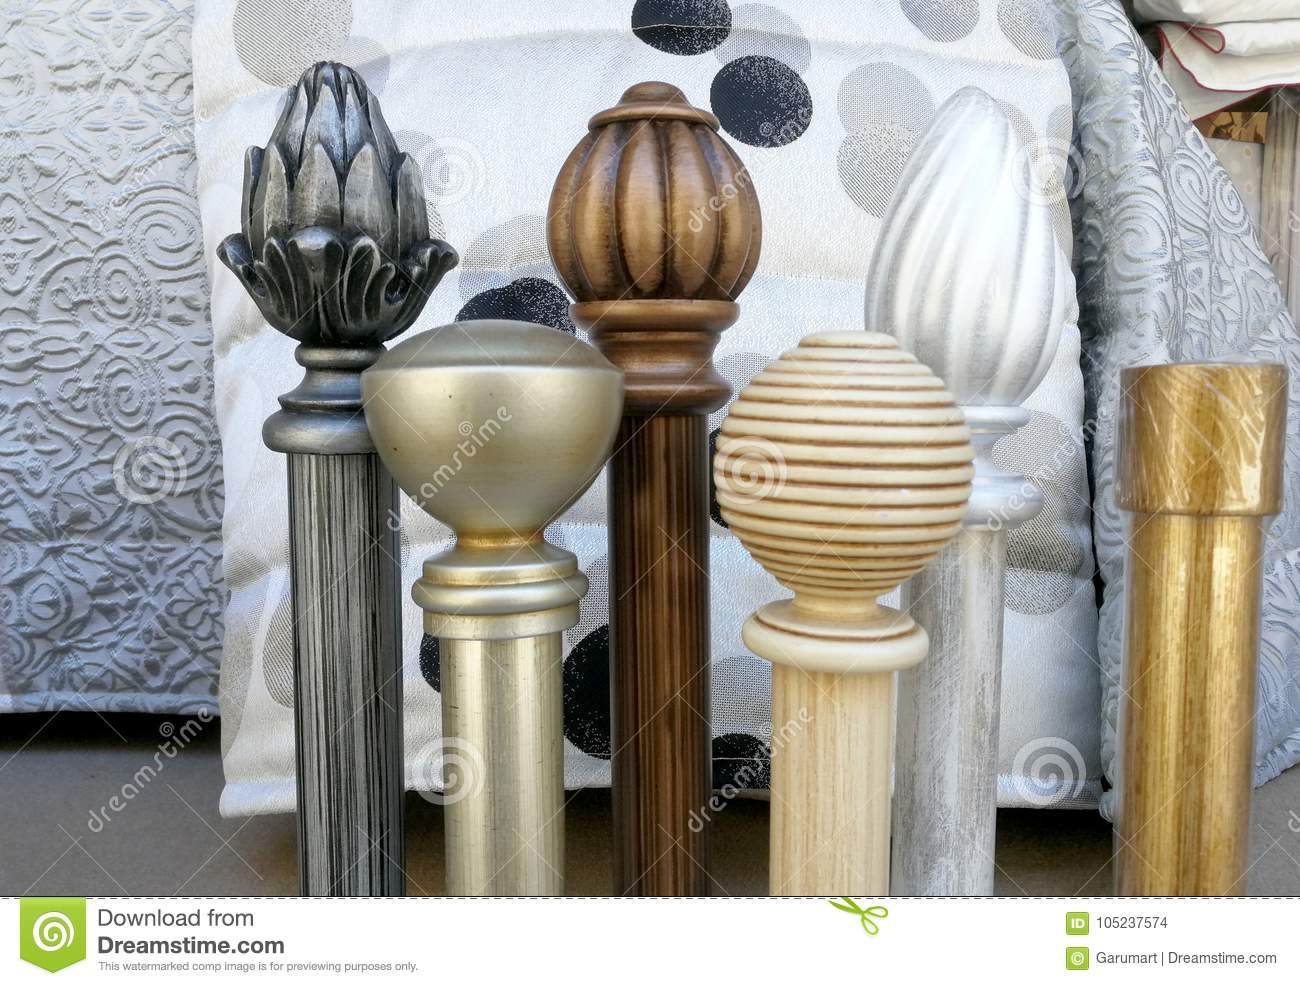 Modern Knobs For Curtain Rods Stock Photo